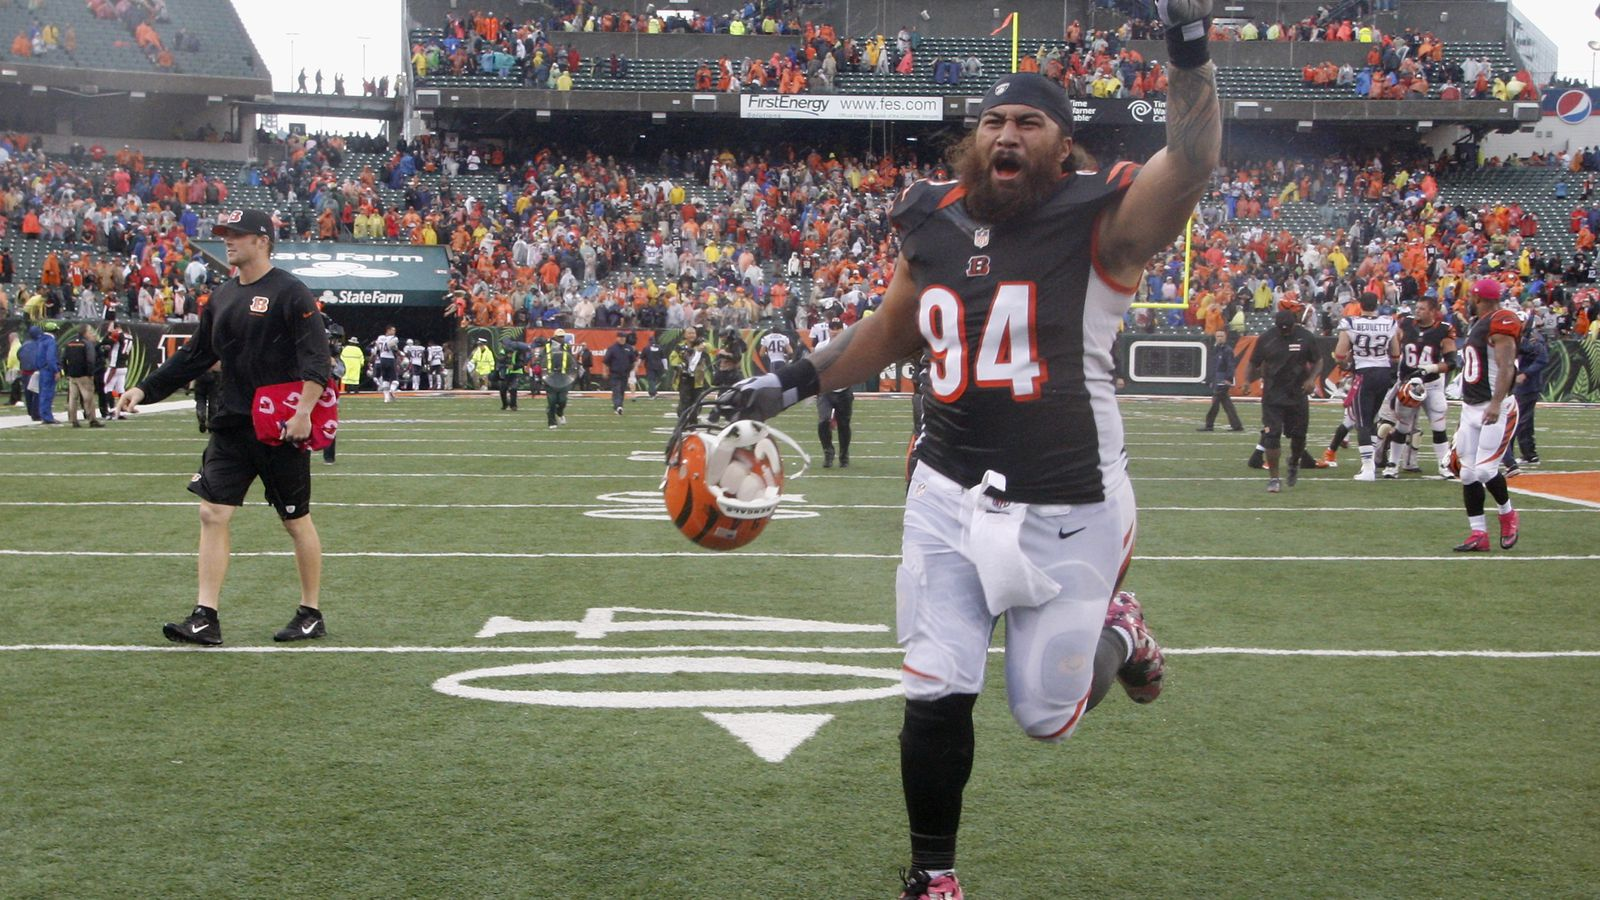 Bengals play Sat. night in NE if they beat SD